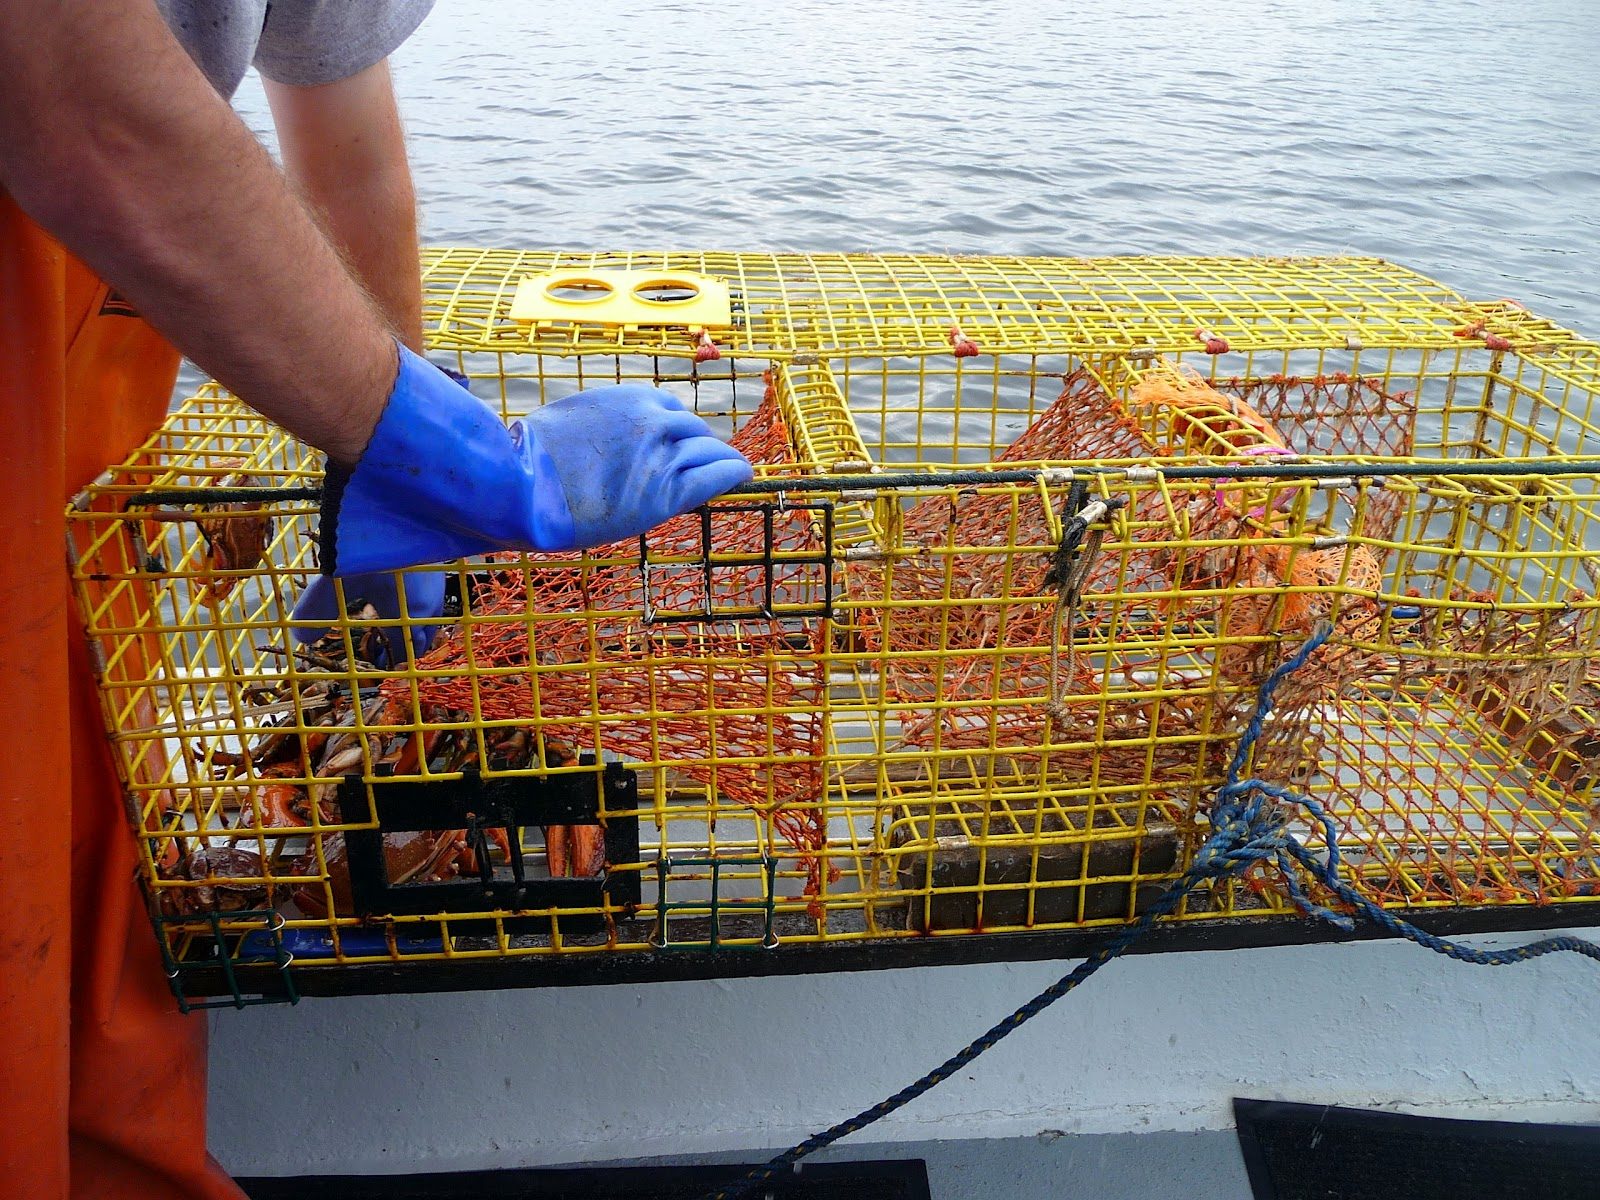 Chef Bolek: A Day in the Life of a Lobster Fisherman